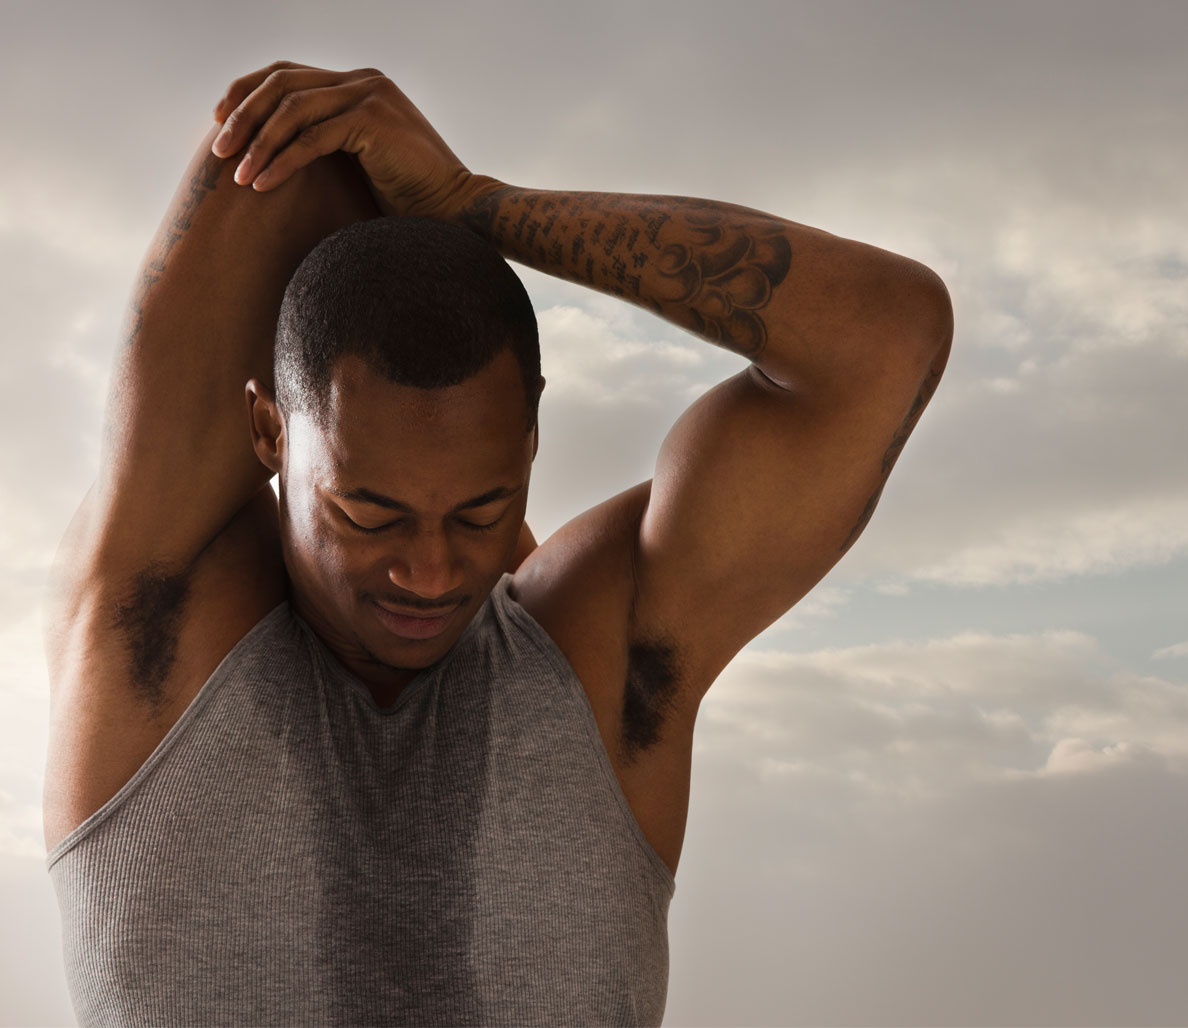 e6e7995ce3 Do you sweat too much  6 ways to stop excessive sweating